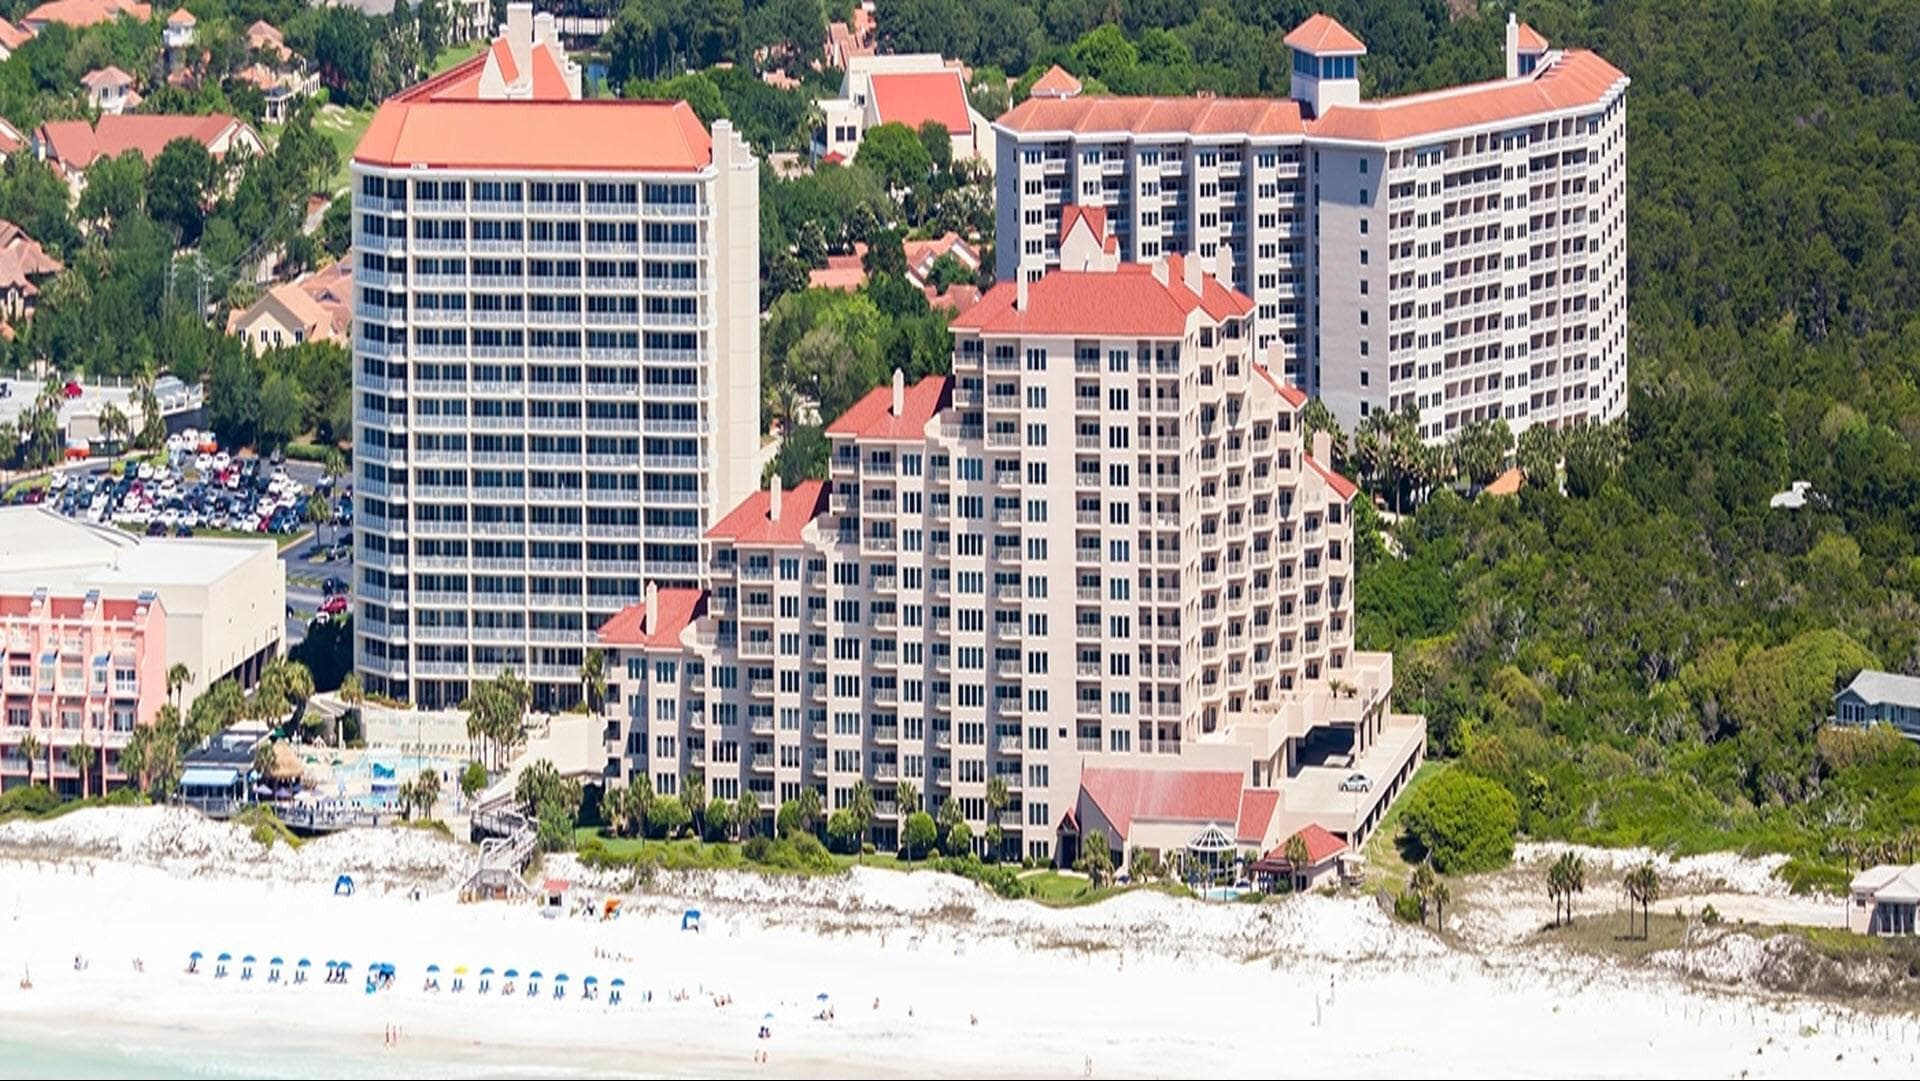 TOPS'L Beach & Racquet Resort by Wyndham - one of the best tennis resorts for your tennis holidays in Florida